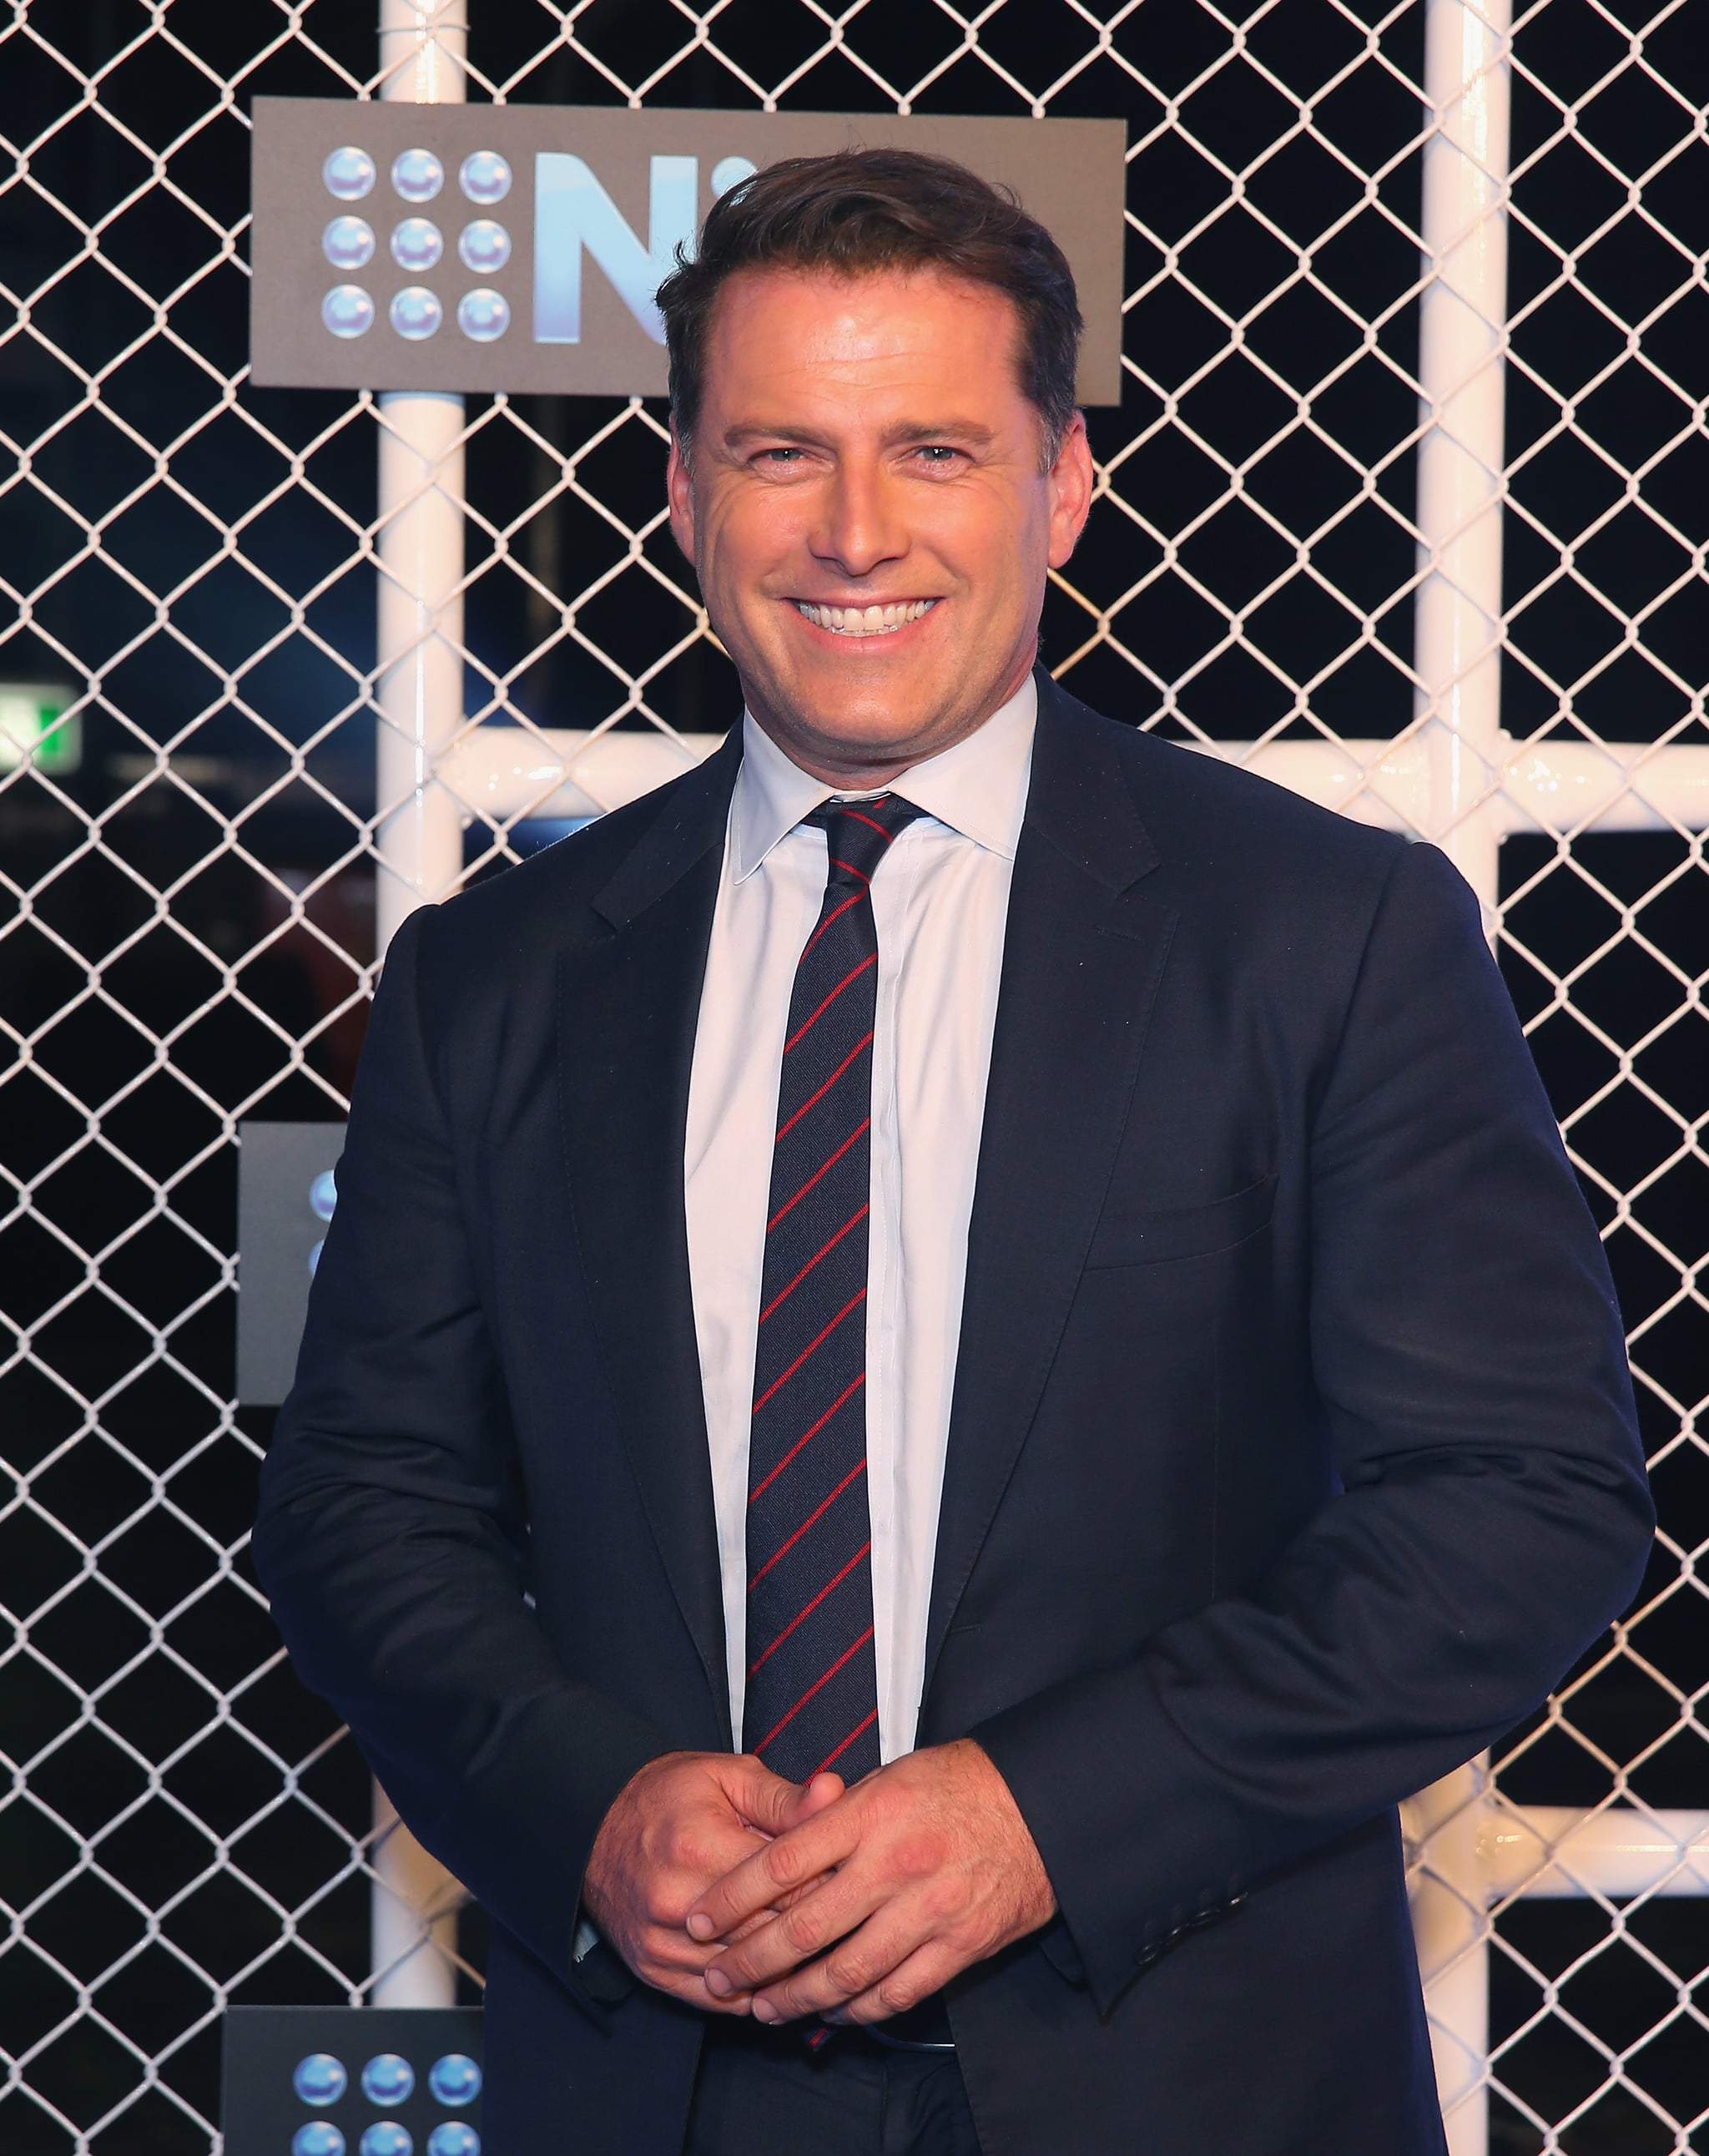 SYDNEY, AUSTRALIA - OCTOBER 17:  Karl Stefanovic attends the 2019 Nine Upfronts on October 17, 2018 in Sydney, Australia.  (Photo by Don Arnold/WireImage)